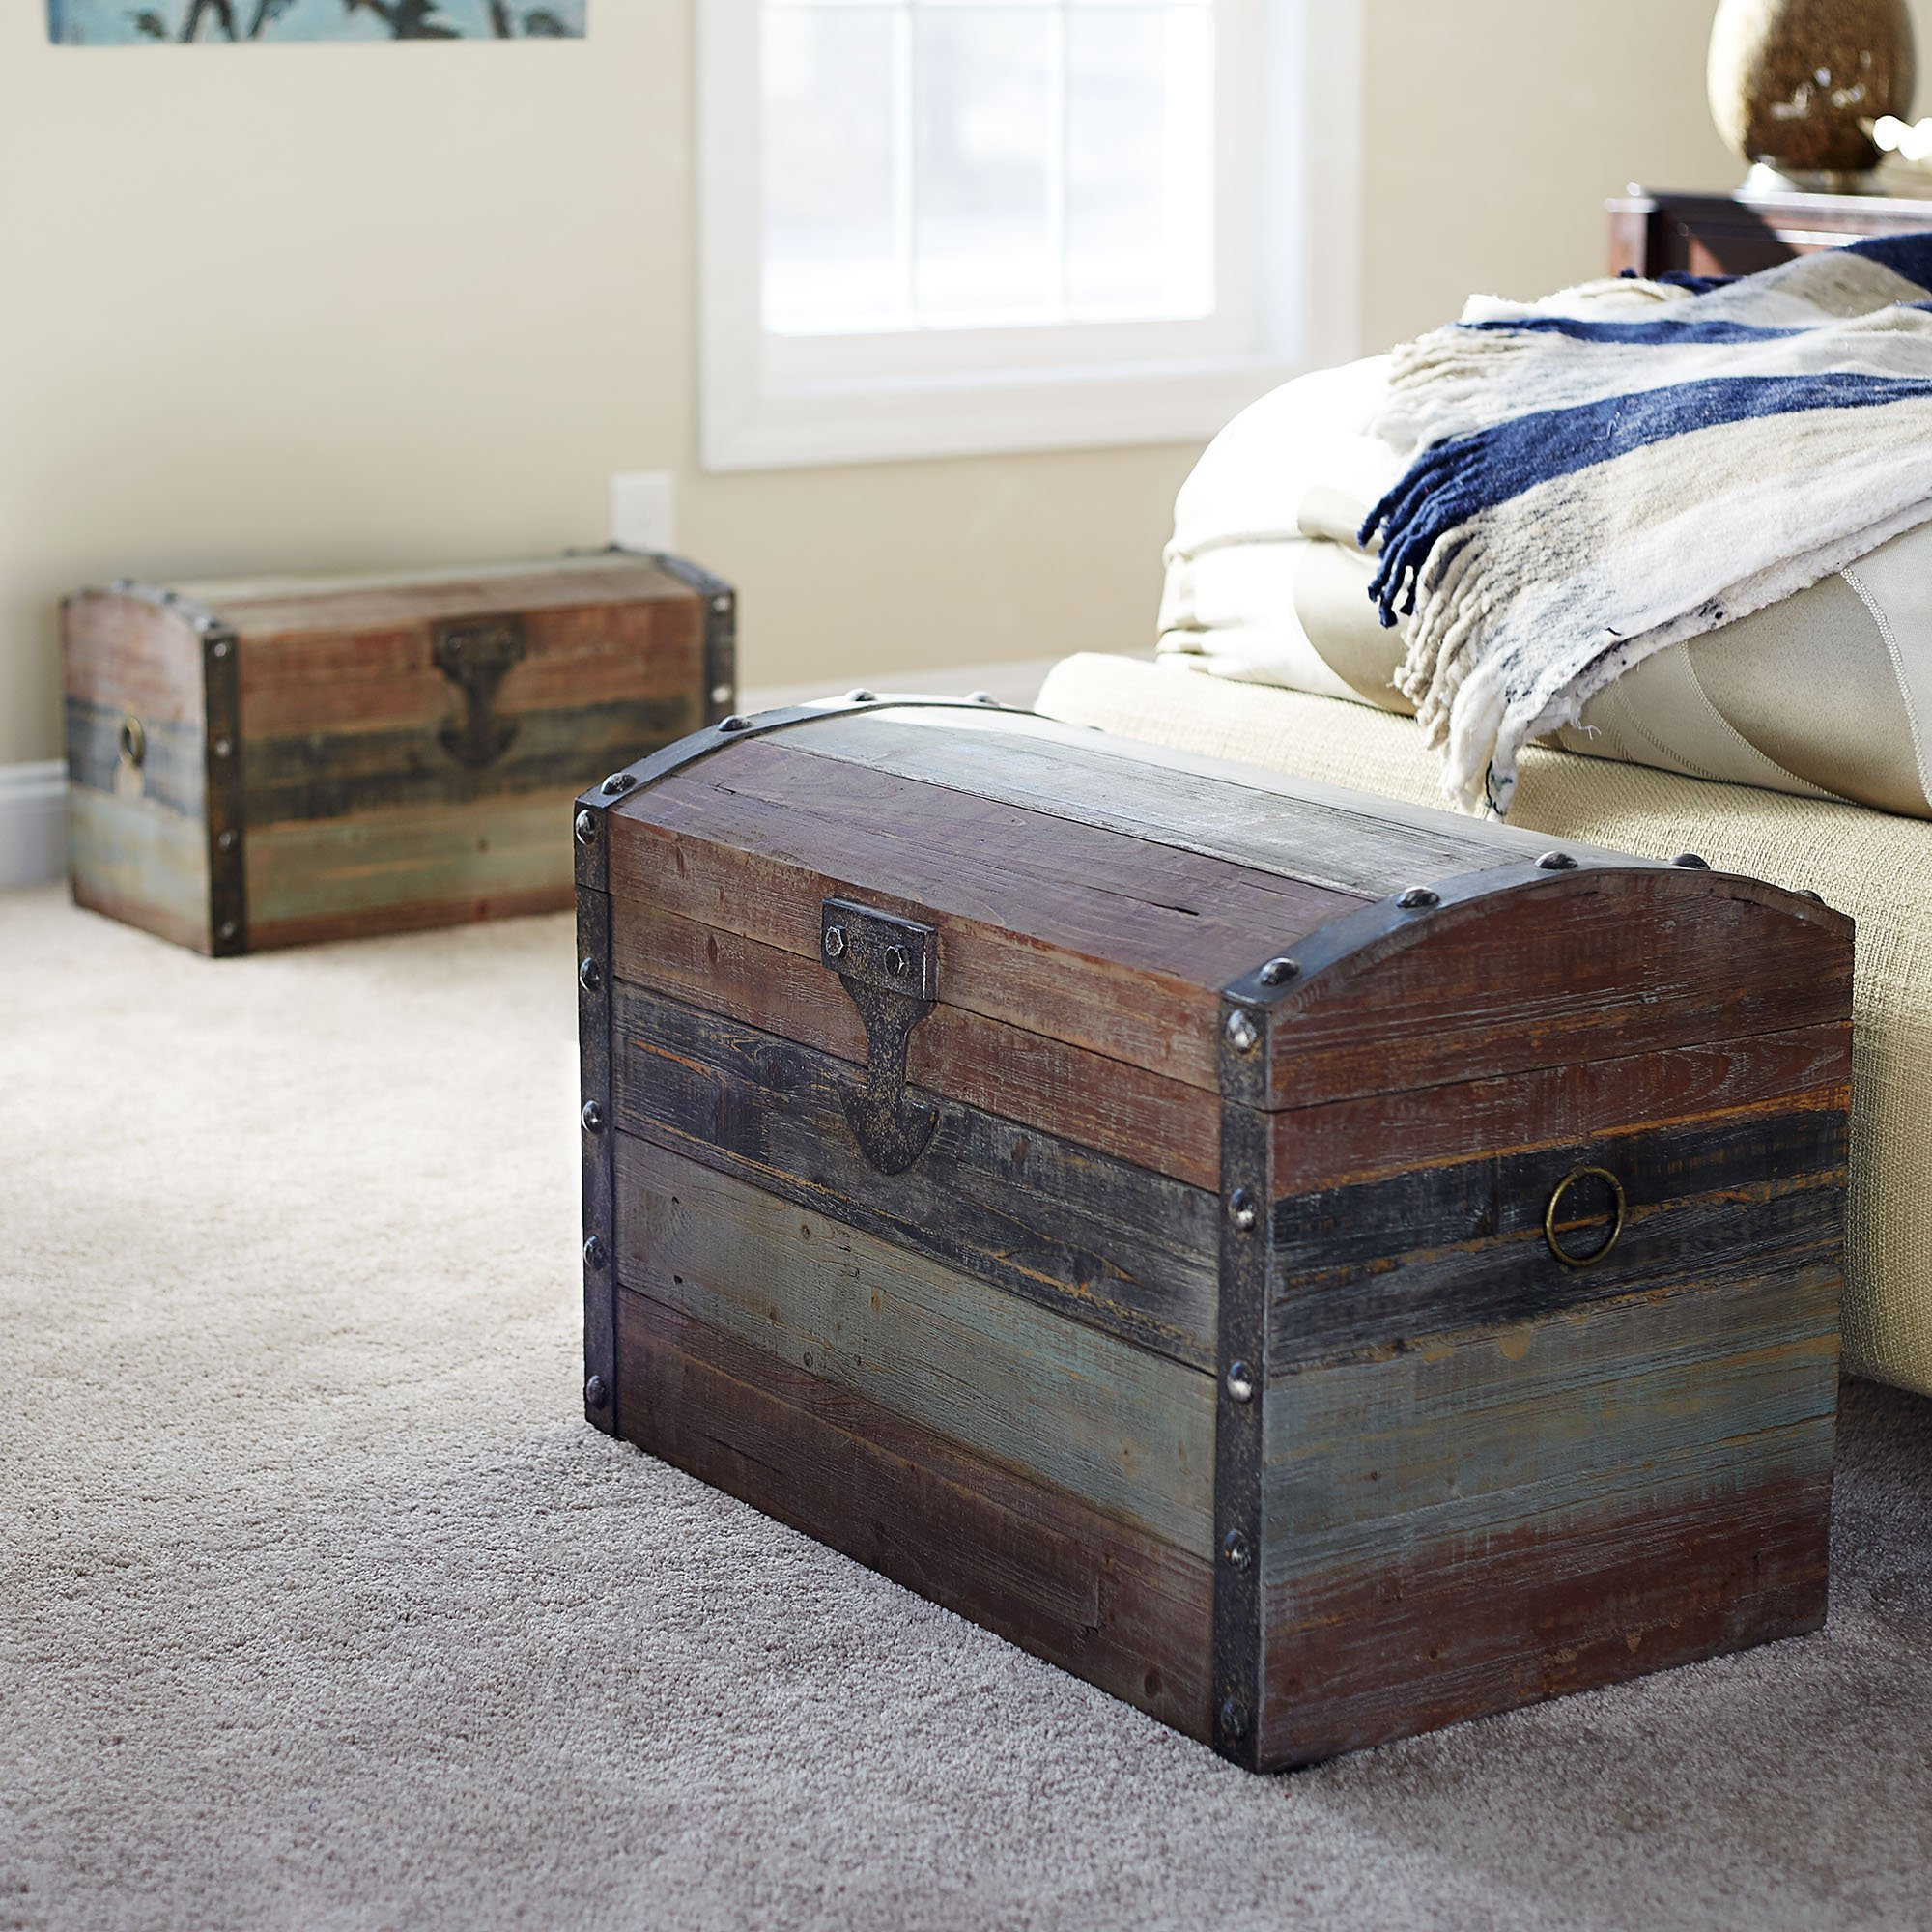 Household Essentials Stripped Weathered Wooden Storage Trunk, Large by Household Essentials (Image #3)